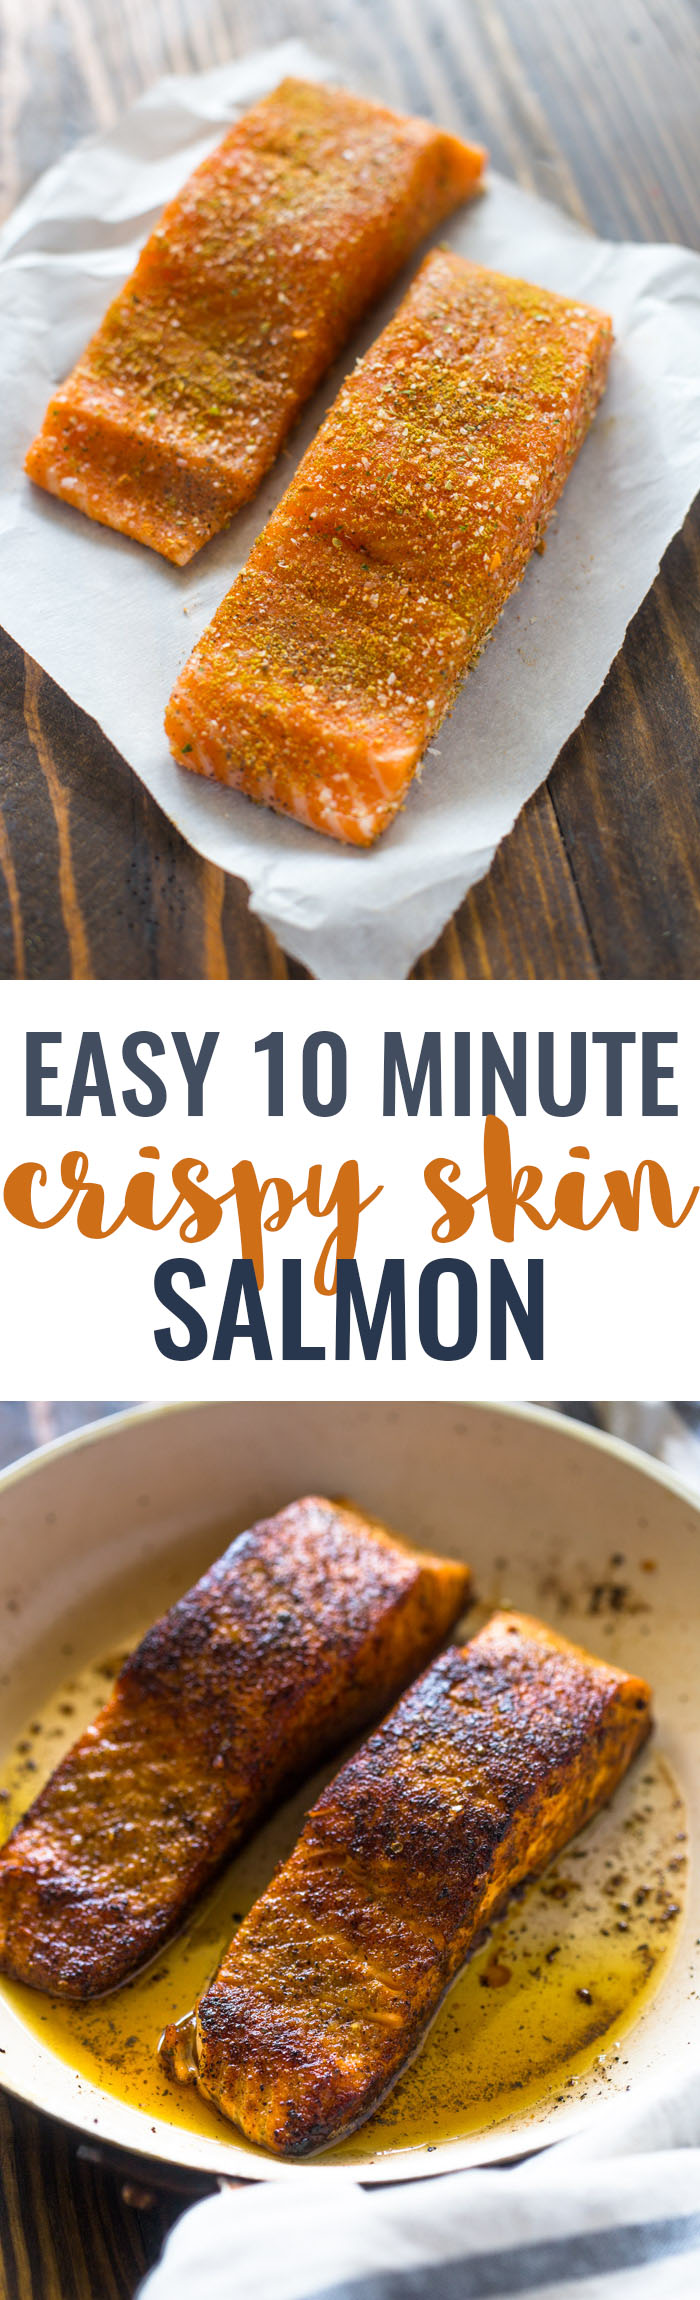 Easy 10 Minute Crispy Skin Salmon